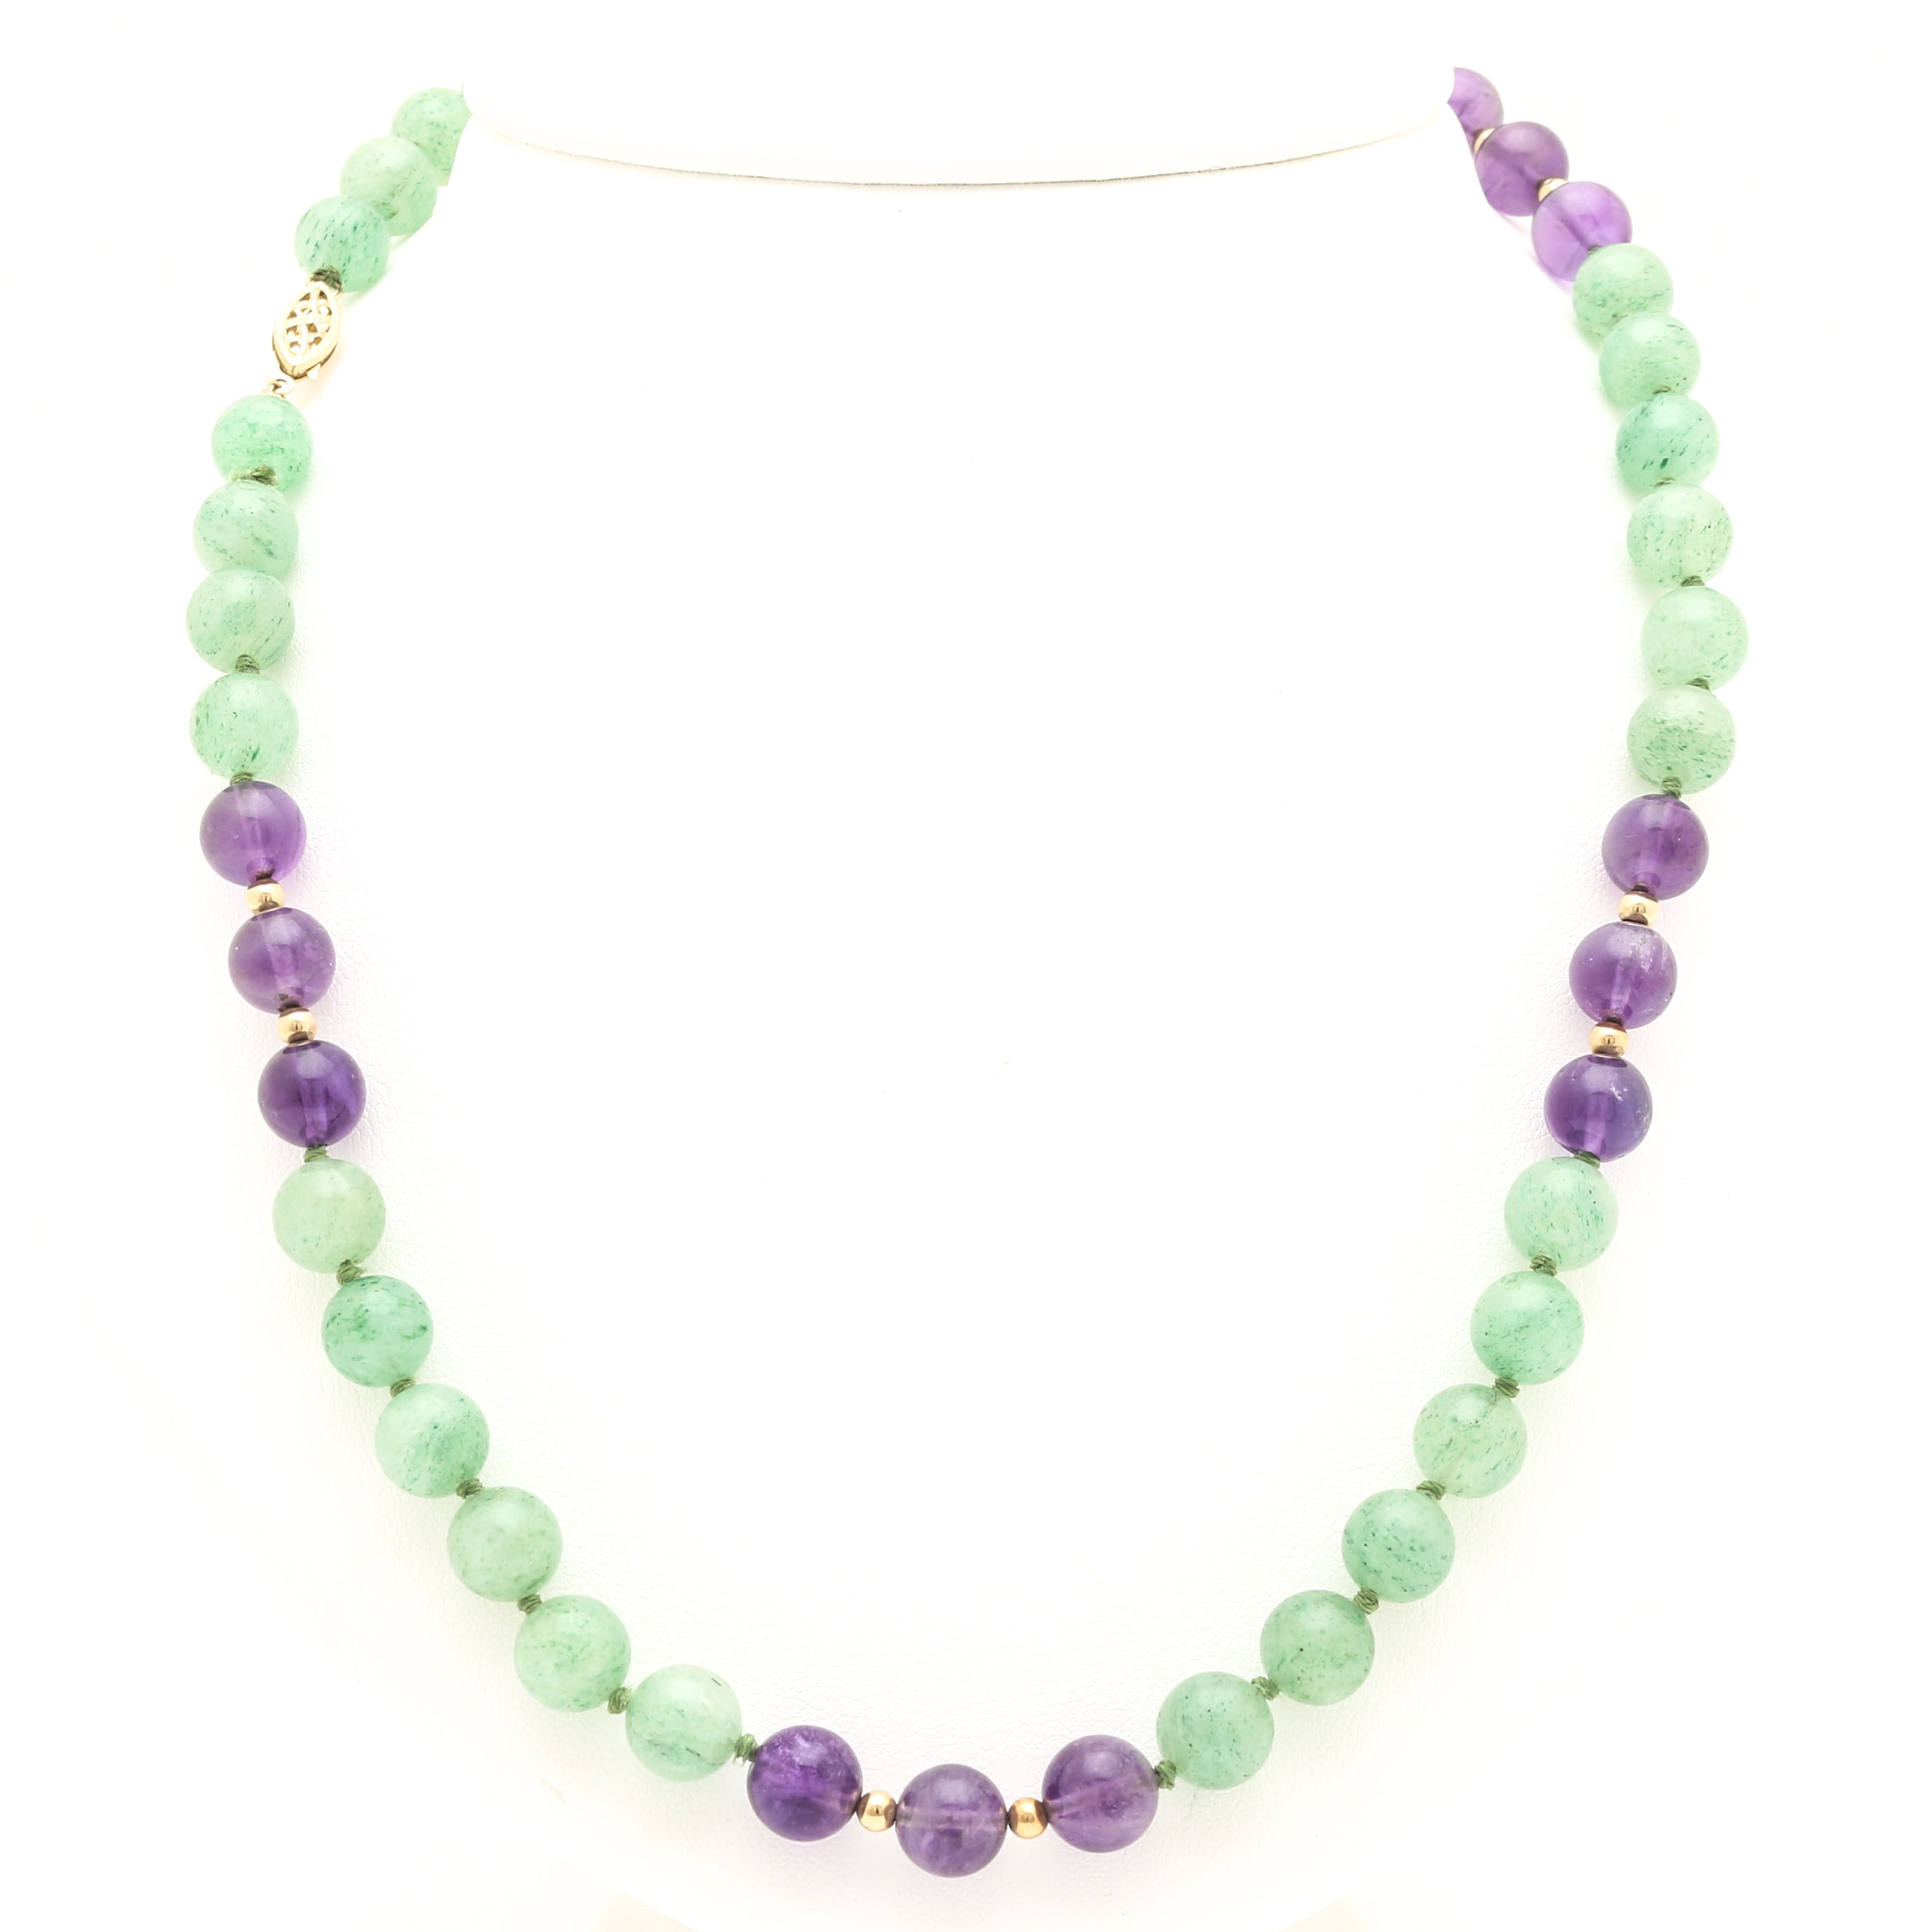 14K Yellow Gold Aventurine and Amethyst Beaded Necklace